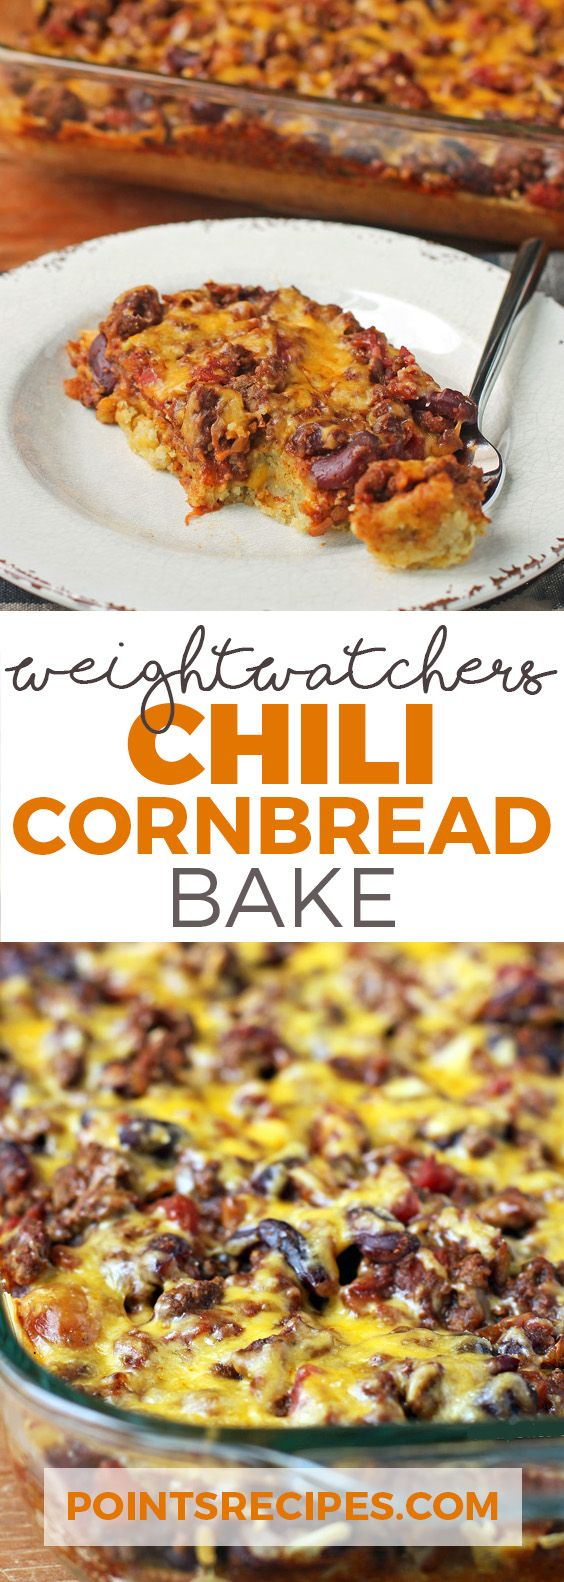 Chili Cornbread Bake (Weight Watchers SmartPoints)